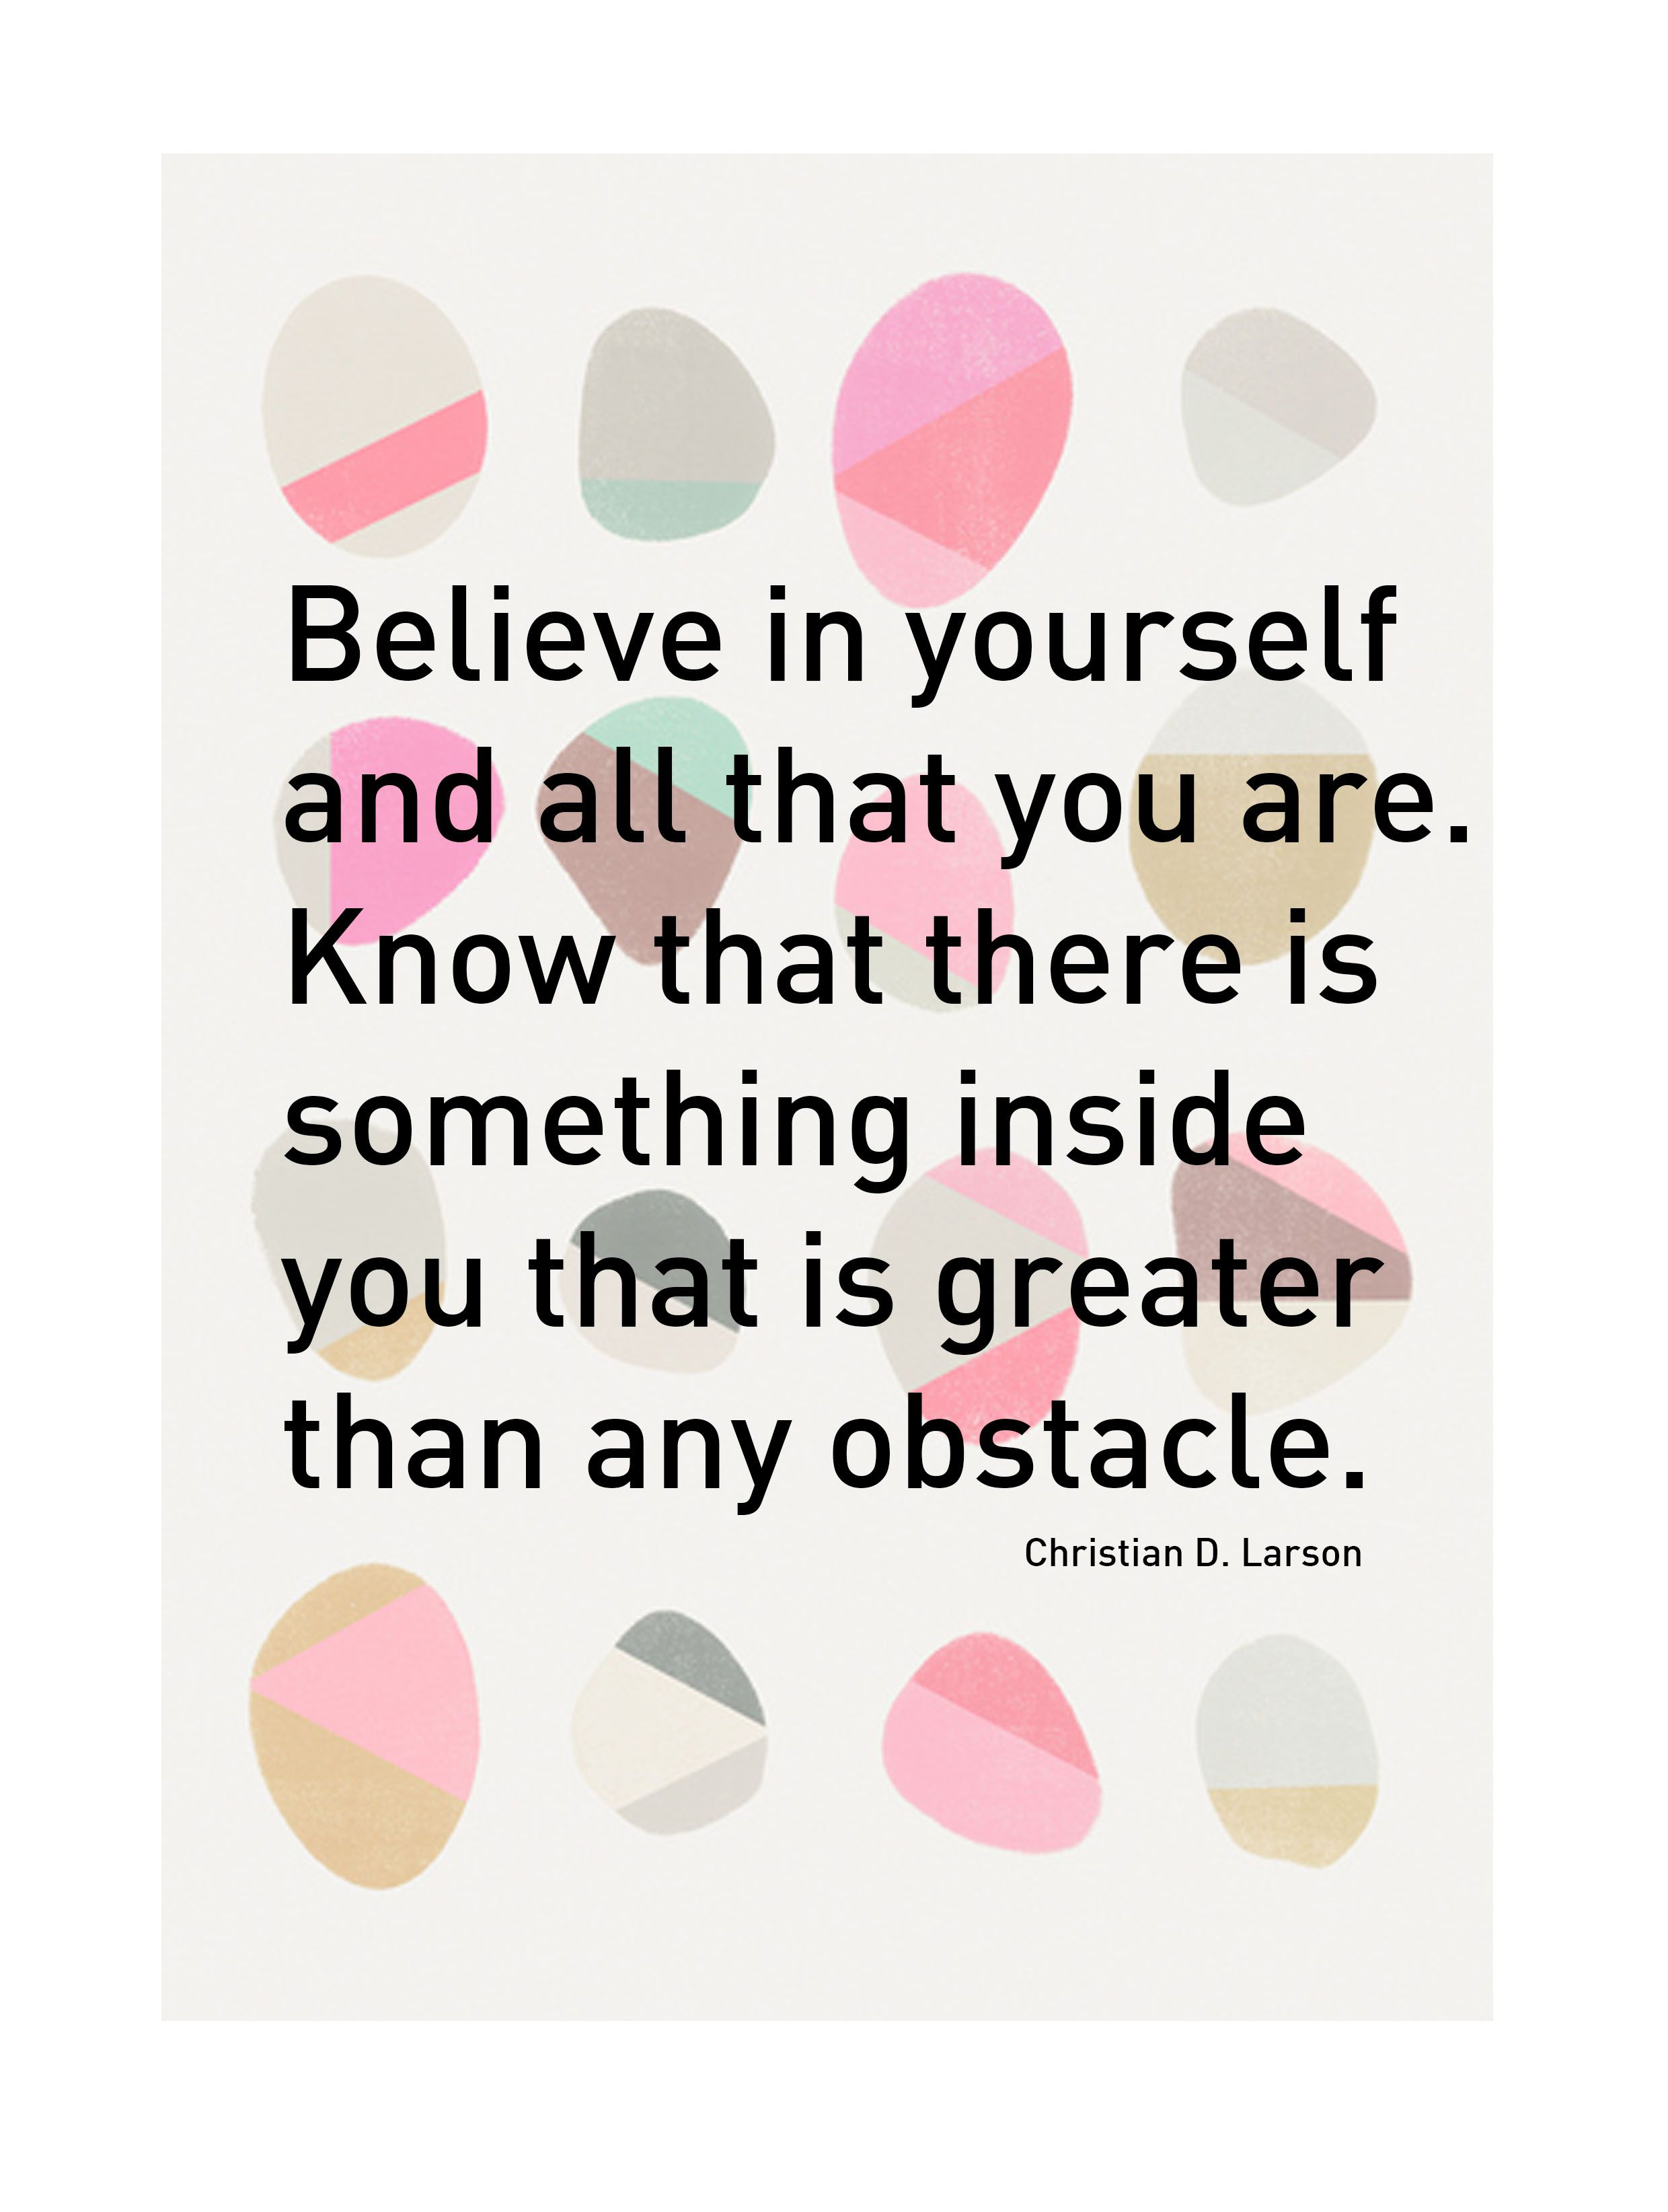 10 Inspirational Quotes For Students Student Life The Spot Inspirational Quotes For Students Quotes For Students Learning Quotes